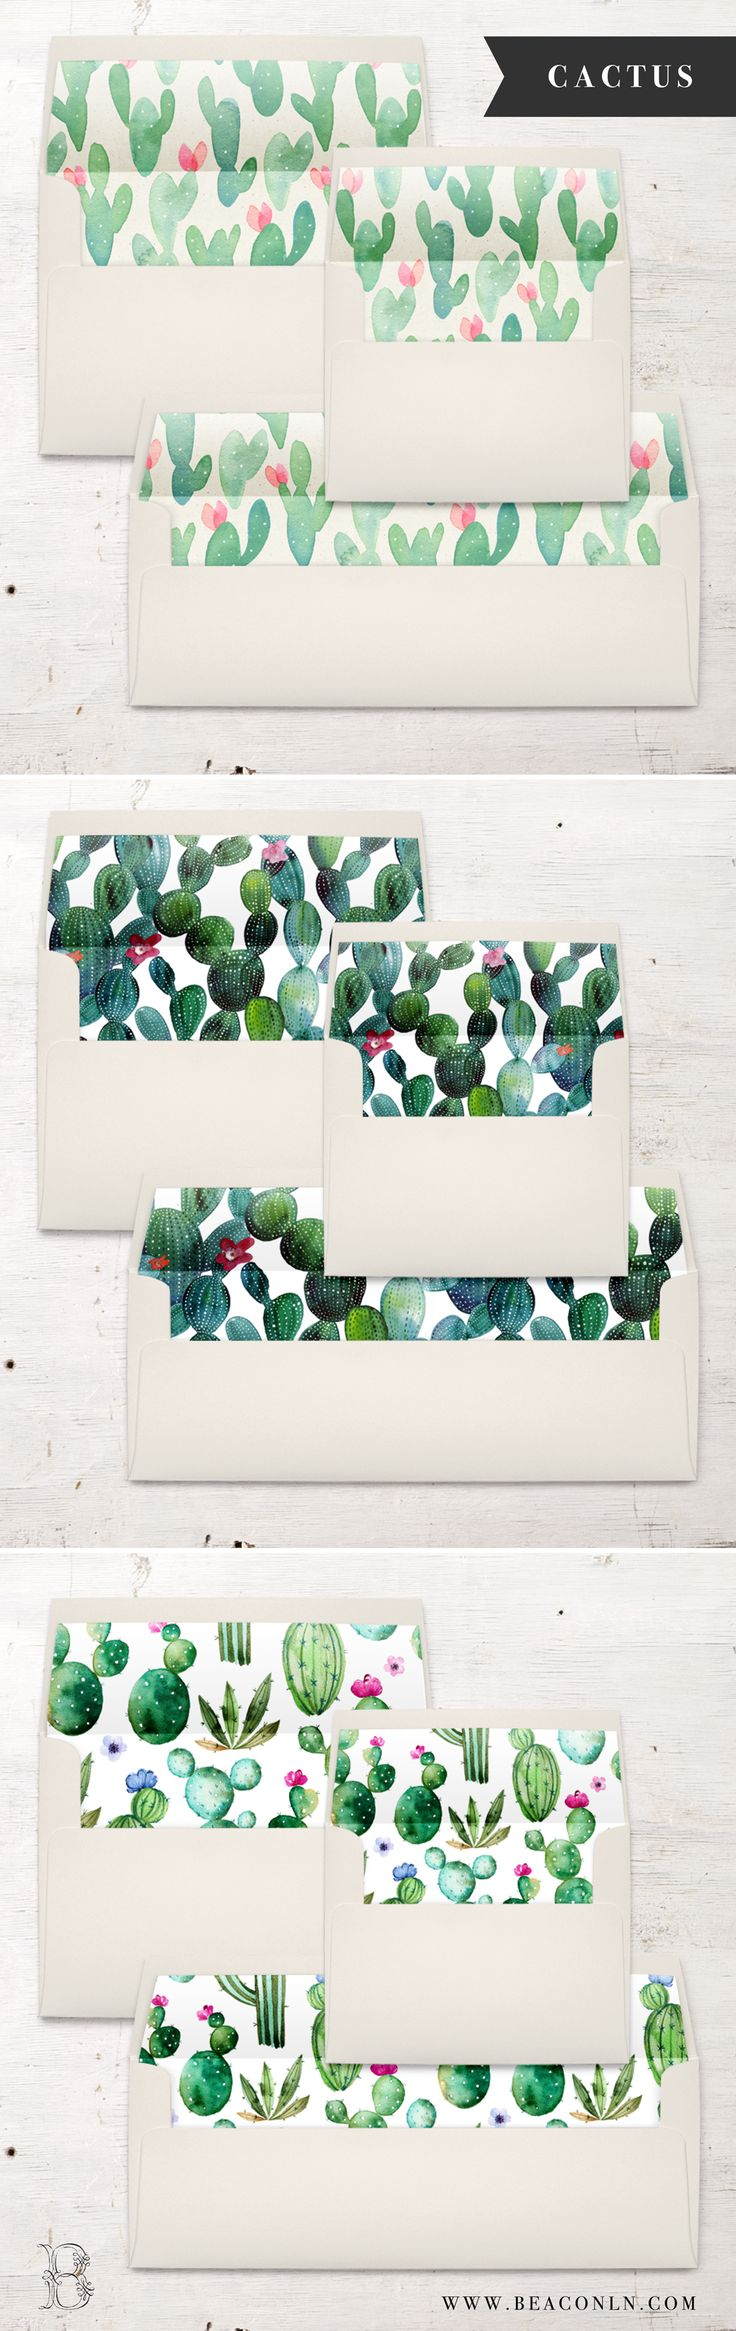 Get ready for some cactus envelope liner pretty! Each A7, A2 or #10 envelope liner is digitally printed on the paper of your choice and then hand cut and assembled inside each envelope. No messy glue strips or at home assembly needed – all the work will be done for you!